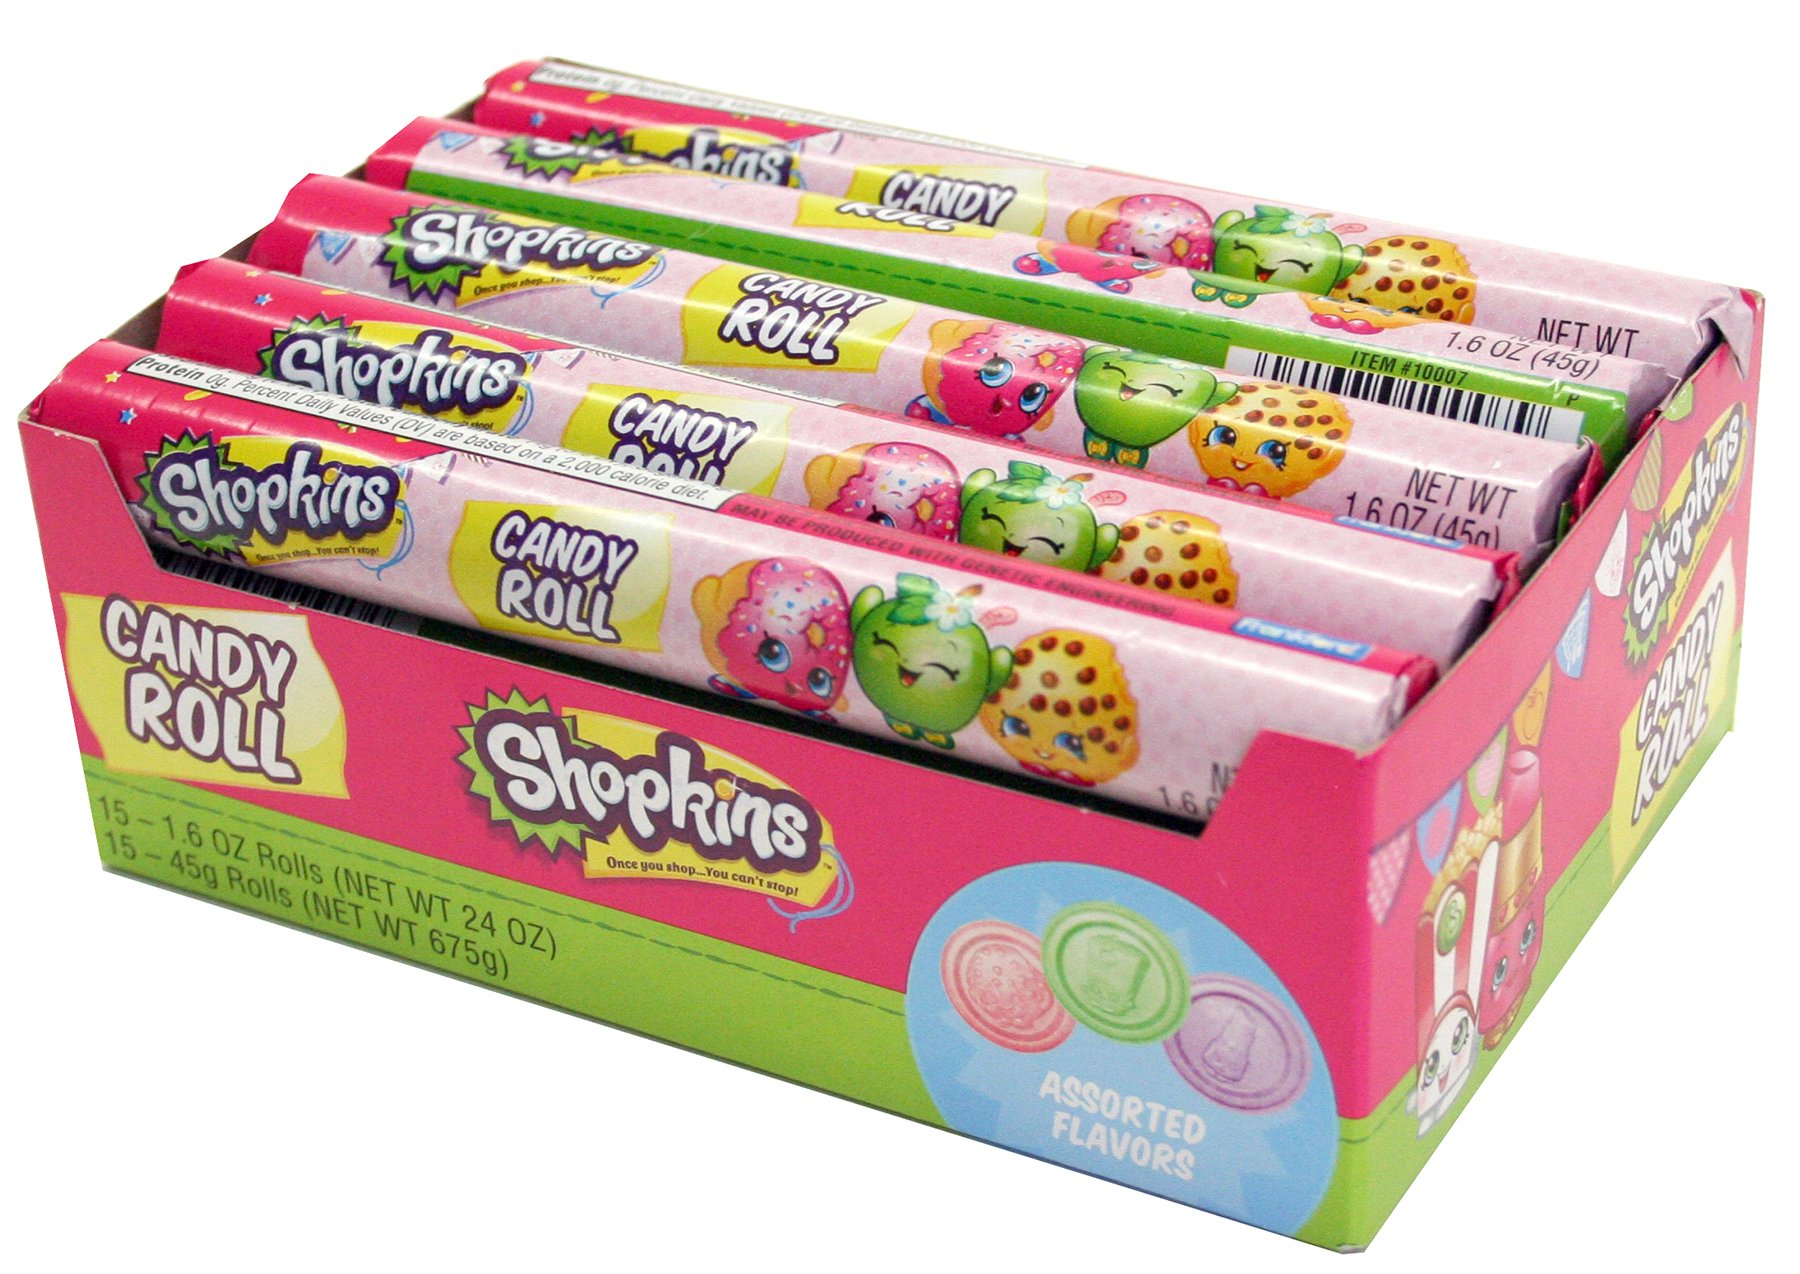 Shopkins Candy Roll All Distributed Items Distributed